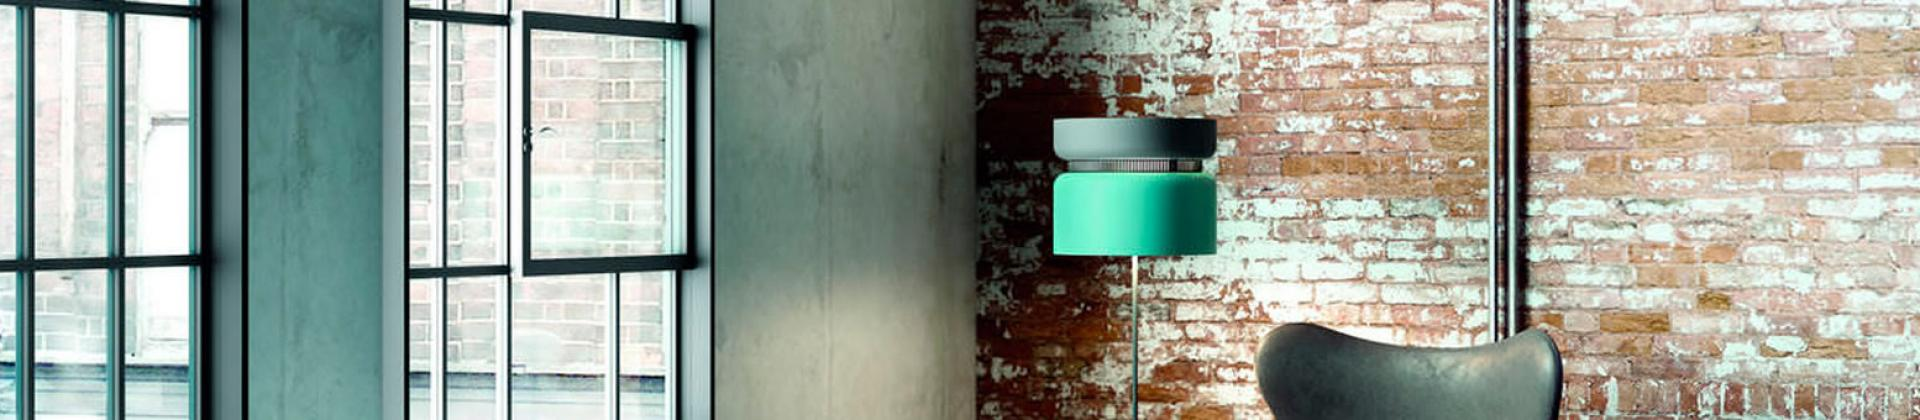 Veroca design lamps by B Lux